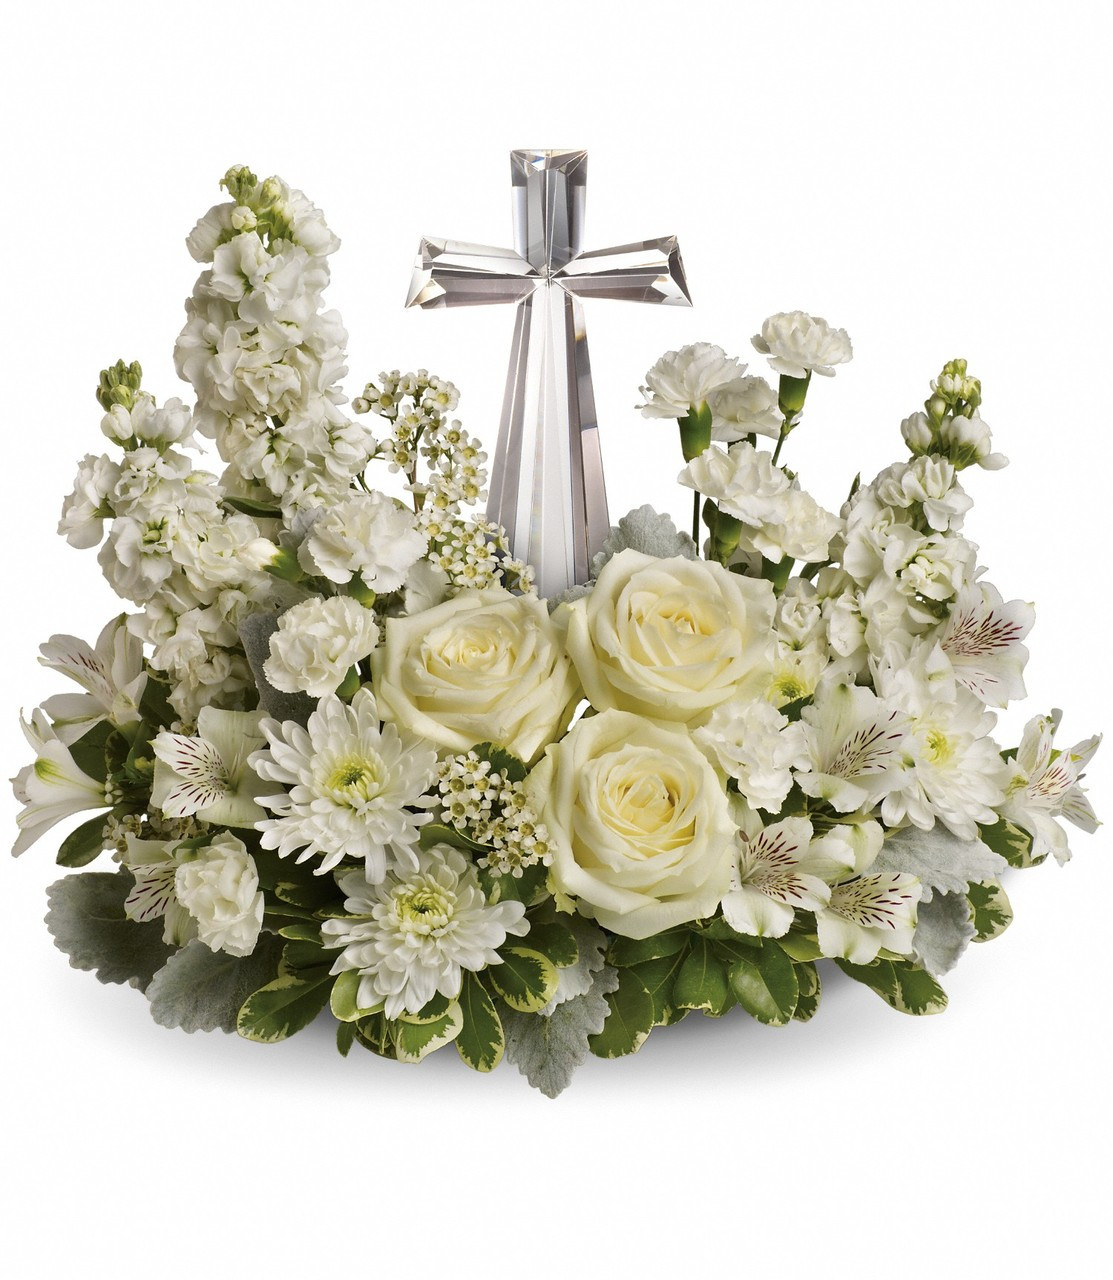 Crystal cross all white sympathy flower arrangement by enchanted florist divine peace crystal cross sympathy flowers by enchanted florist pasadena tx all white roses and mightylinksfo